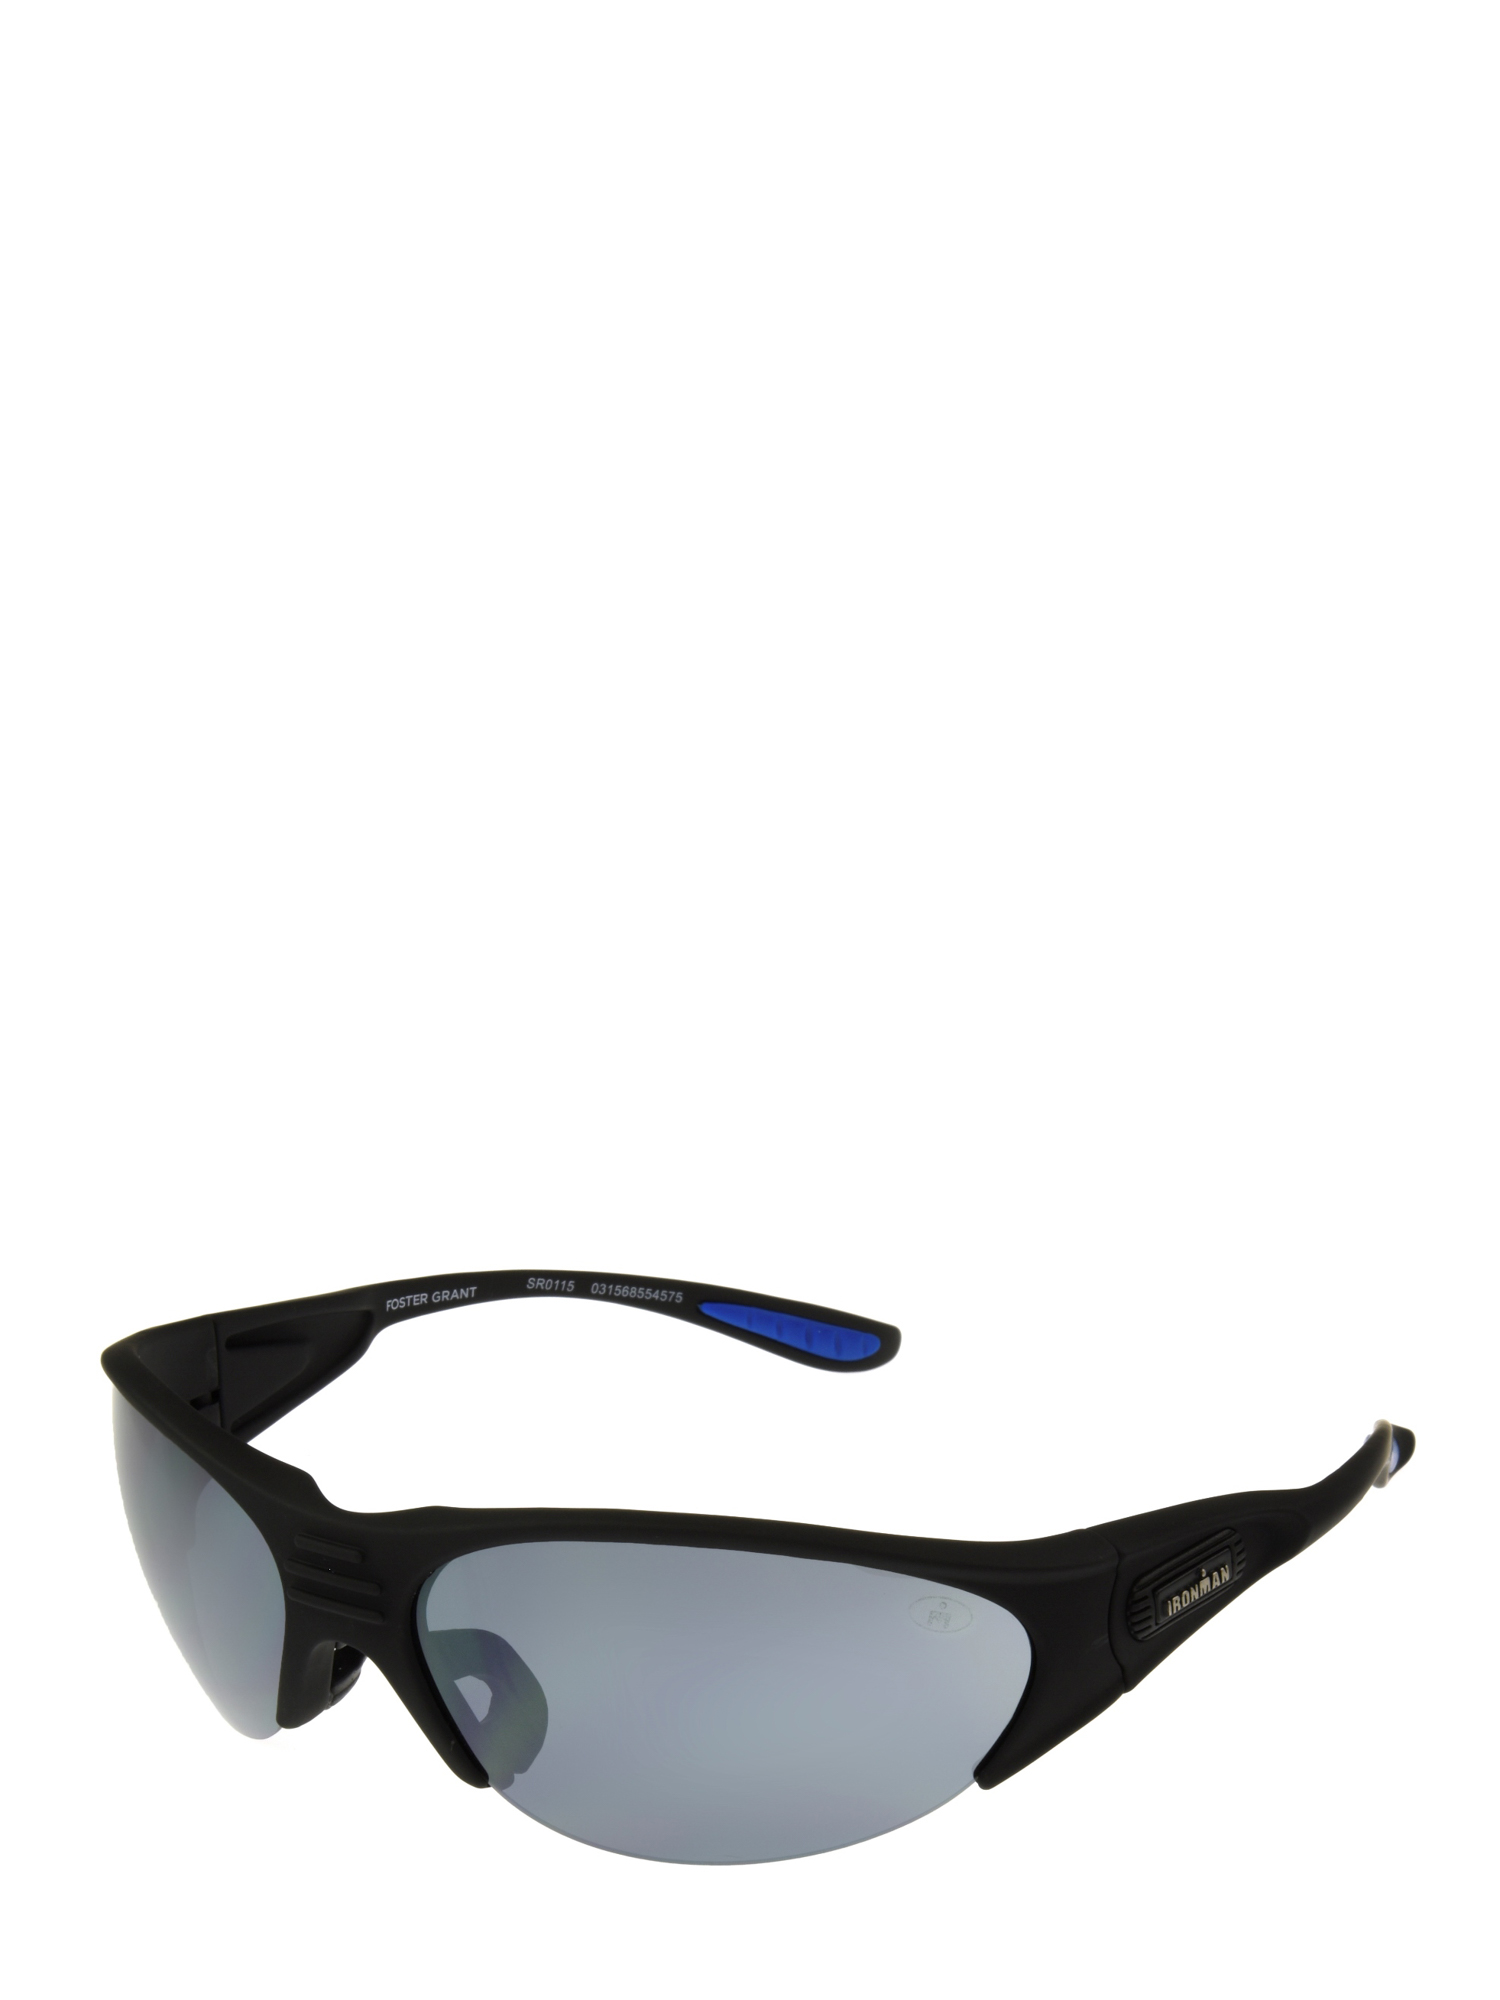 Foster Grant IRONMAN® Wrap 4 Mens Sunglasses